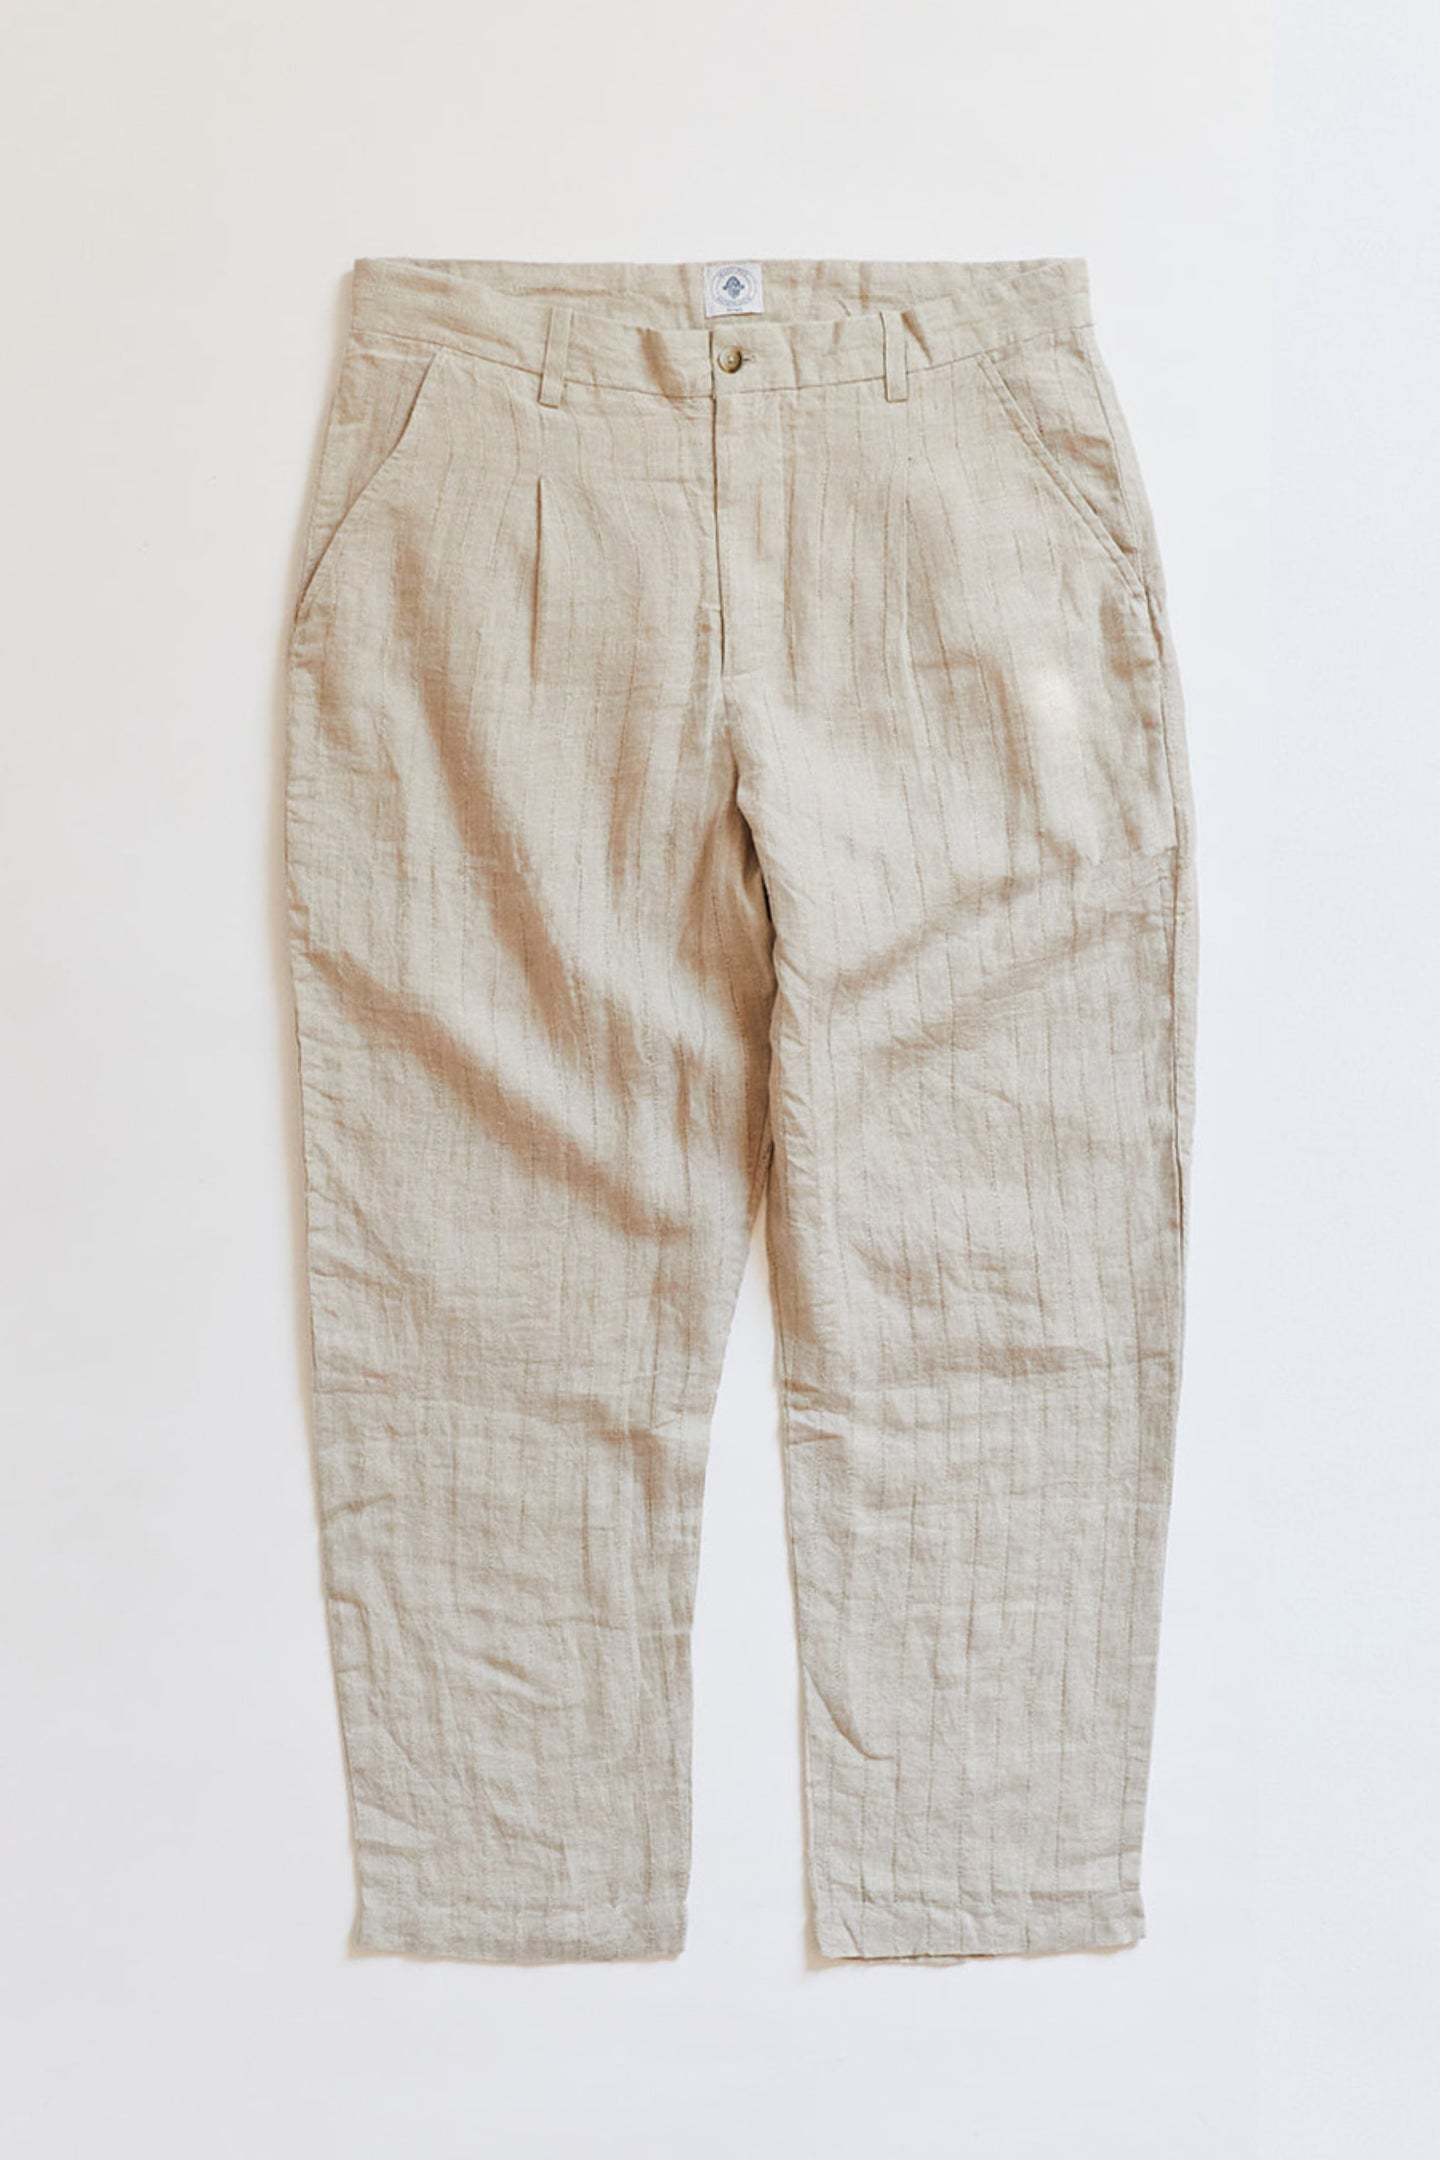 SINGLE PLEAT TROUSER - SAND DROPOUT LINEN